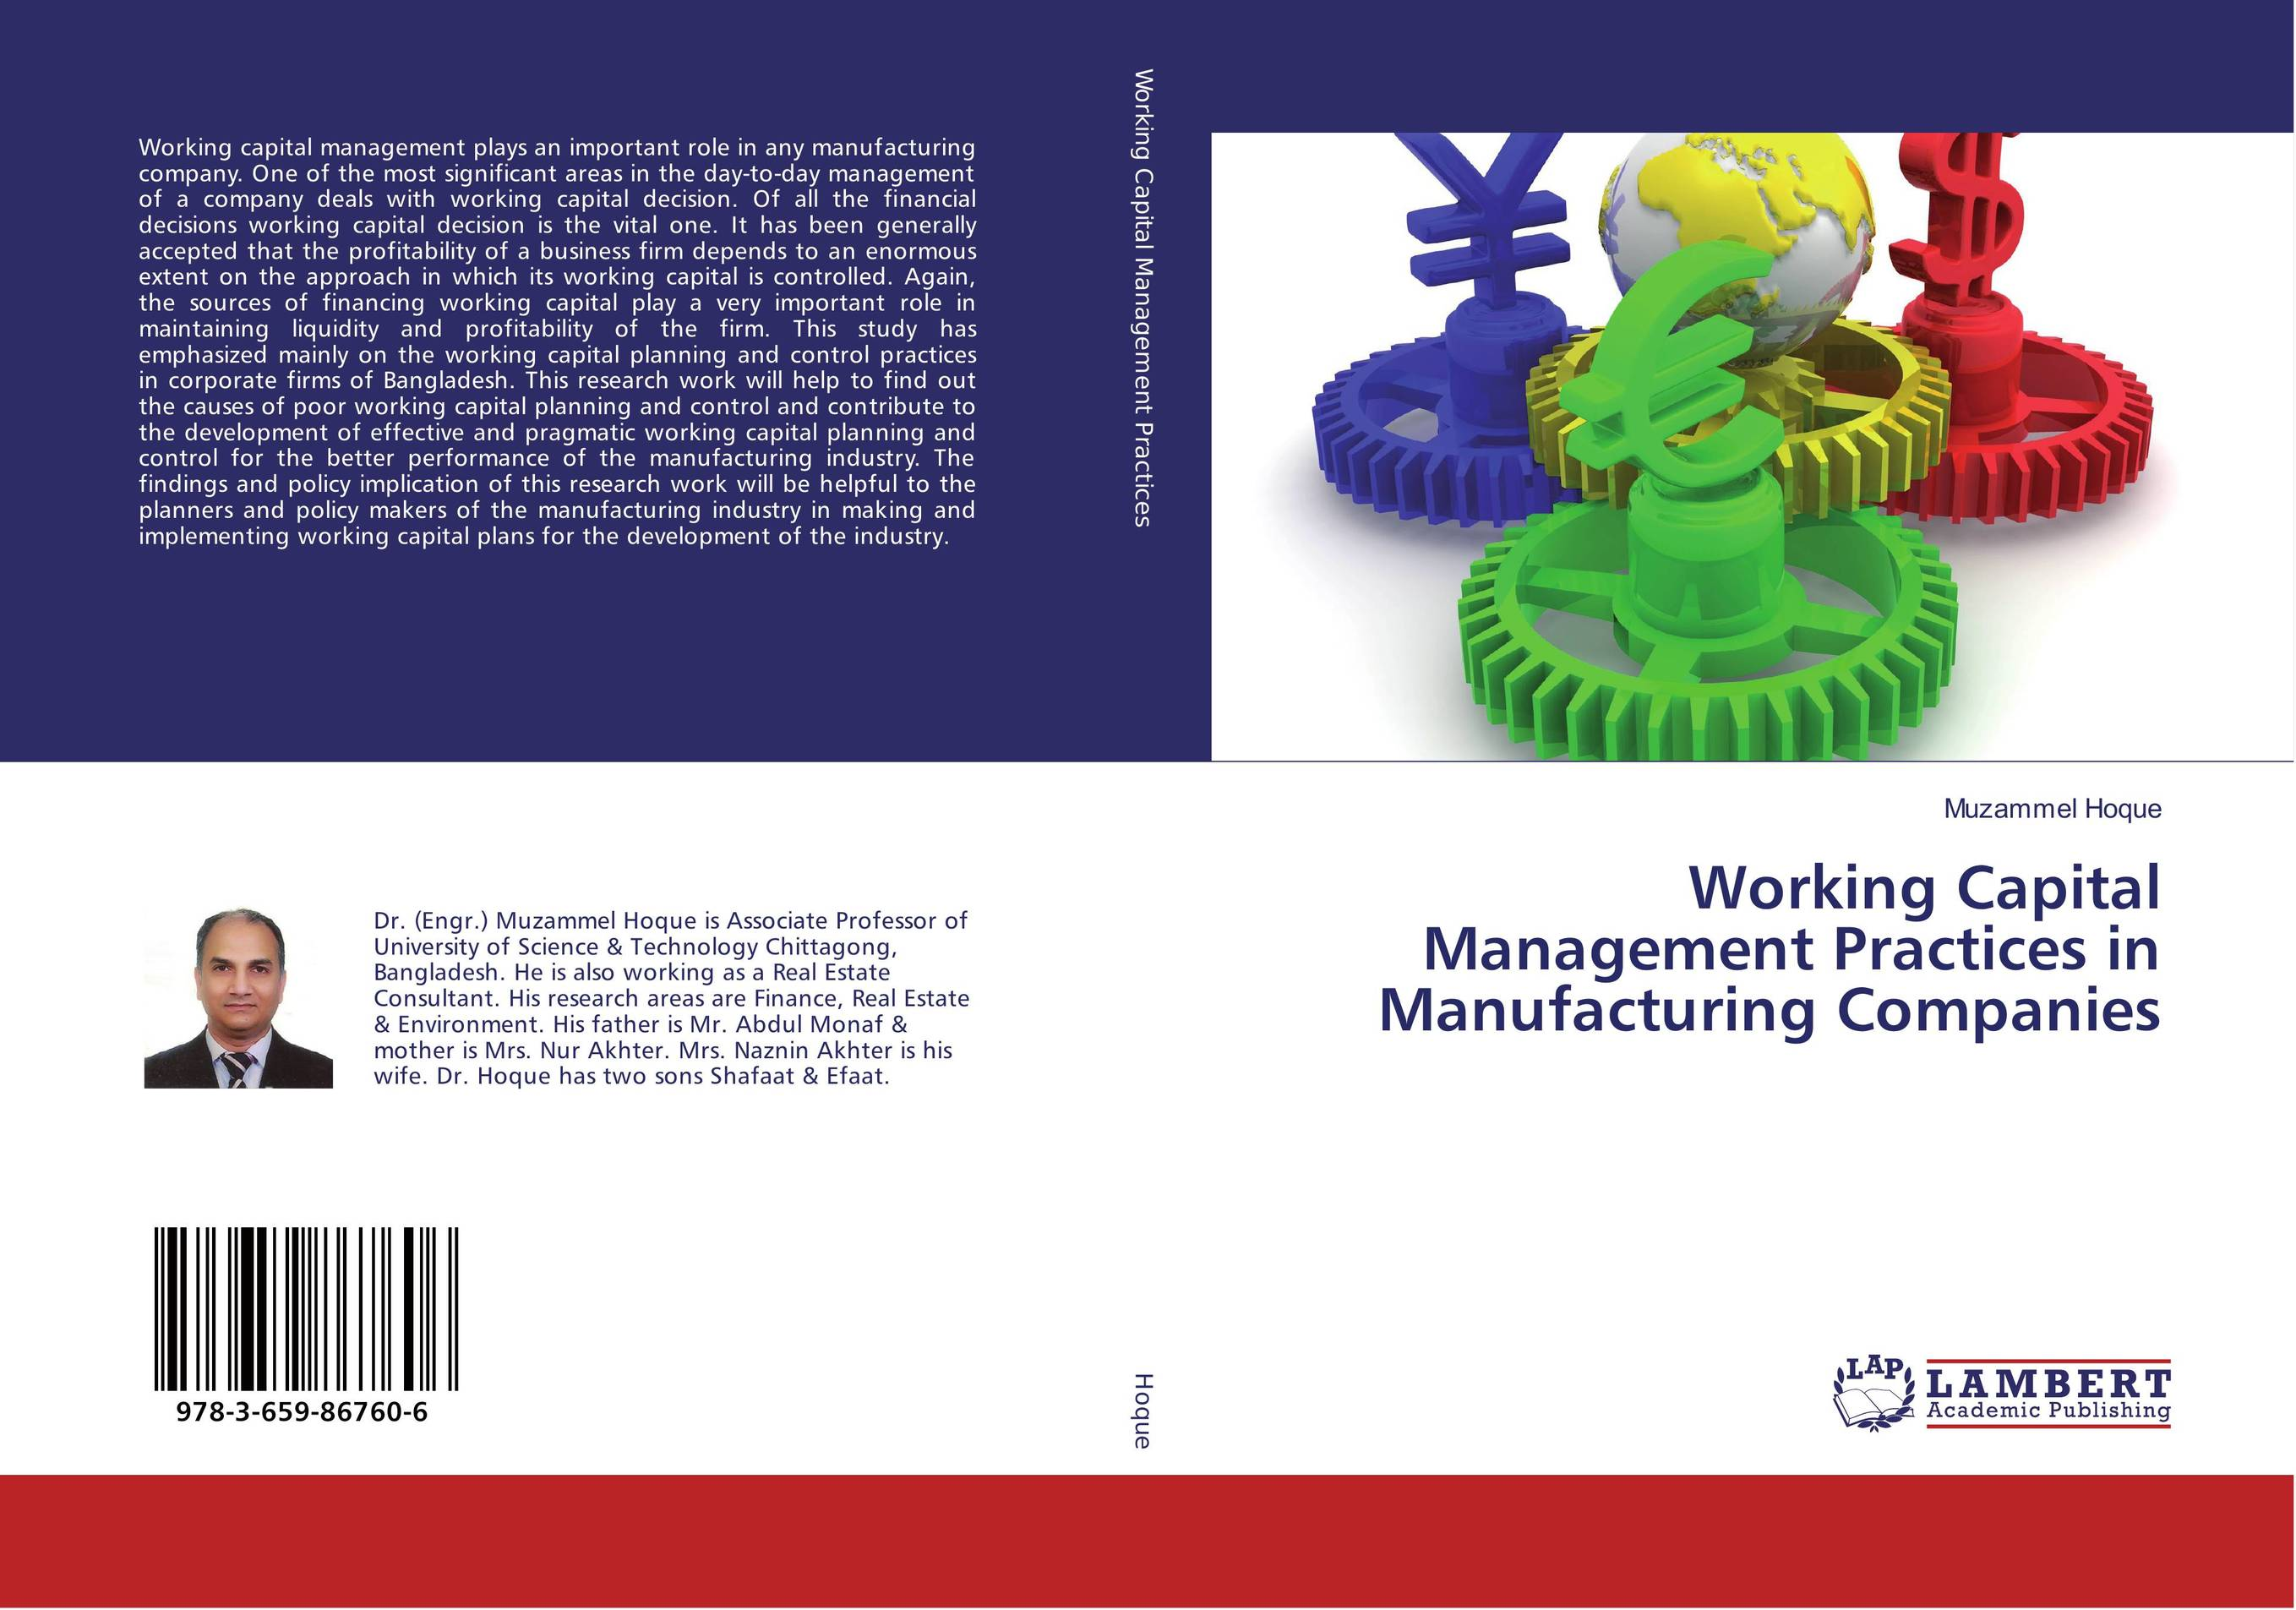 Working Capital Management Practices in Manufacturing Companies juan ramirez handbook of basel iii capital enhancing bank capital in practice isbn 9781119330806